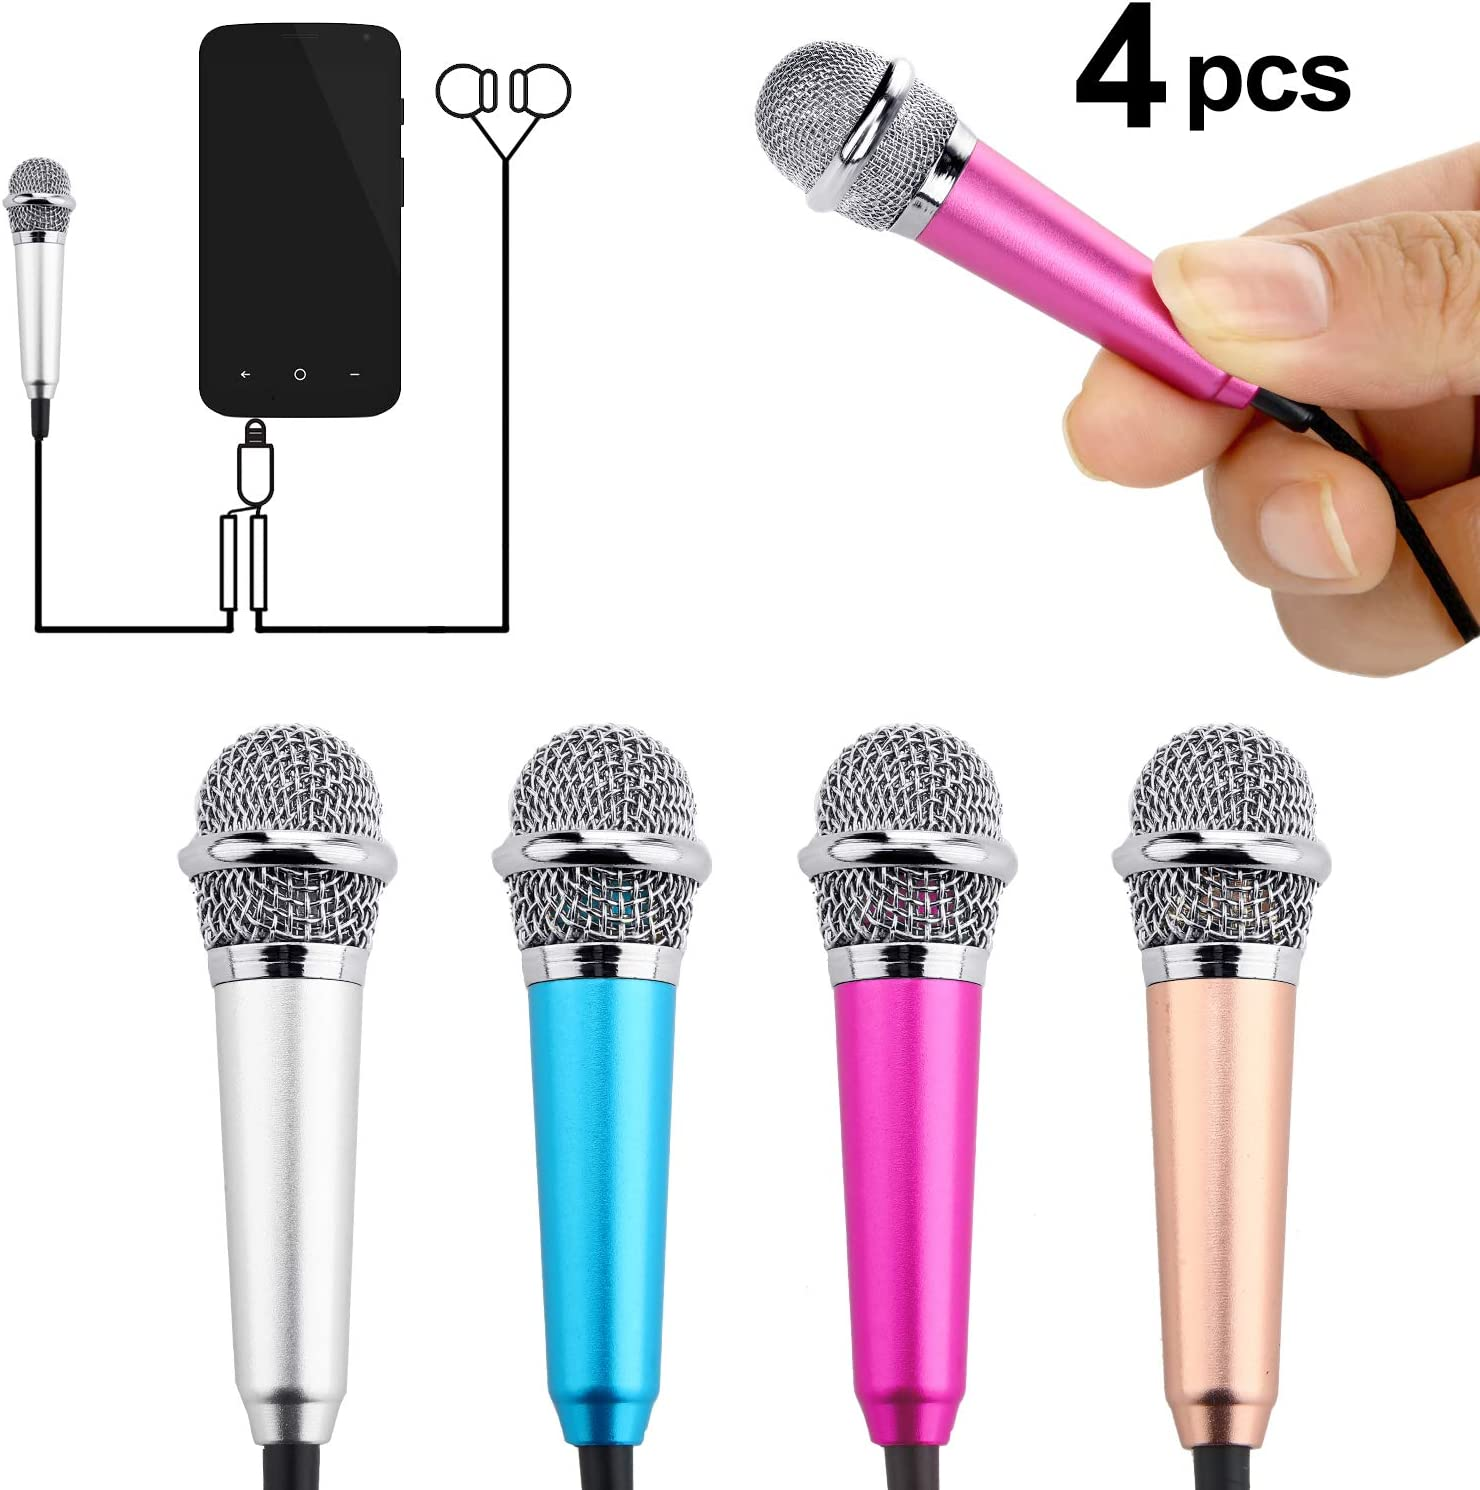 4 Pieces Mini Microphone Portable Vocal Microphone Mini Karaoke Microphone for Mobile Phone Laptop Notebook, 4 Colors